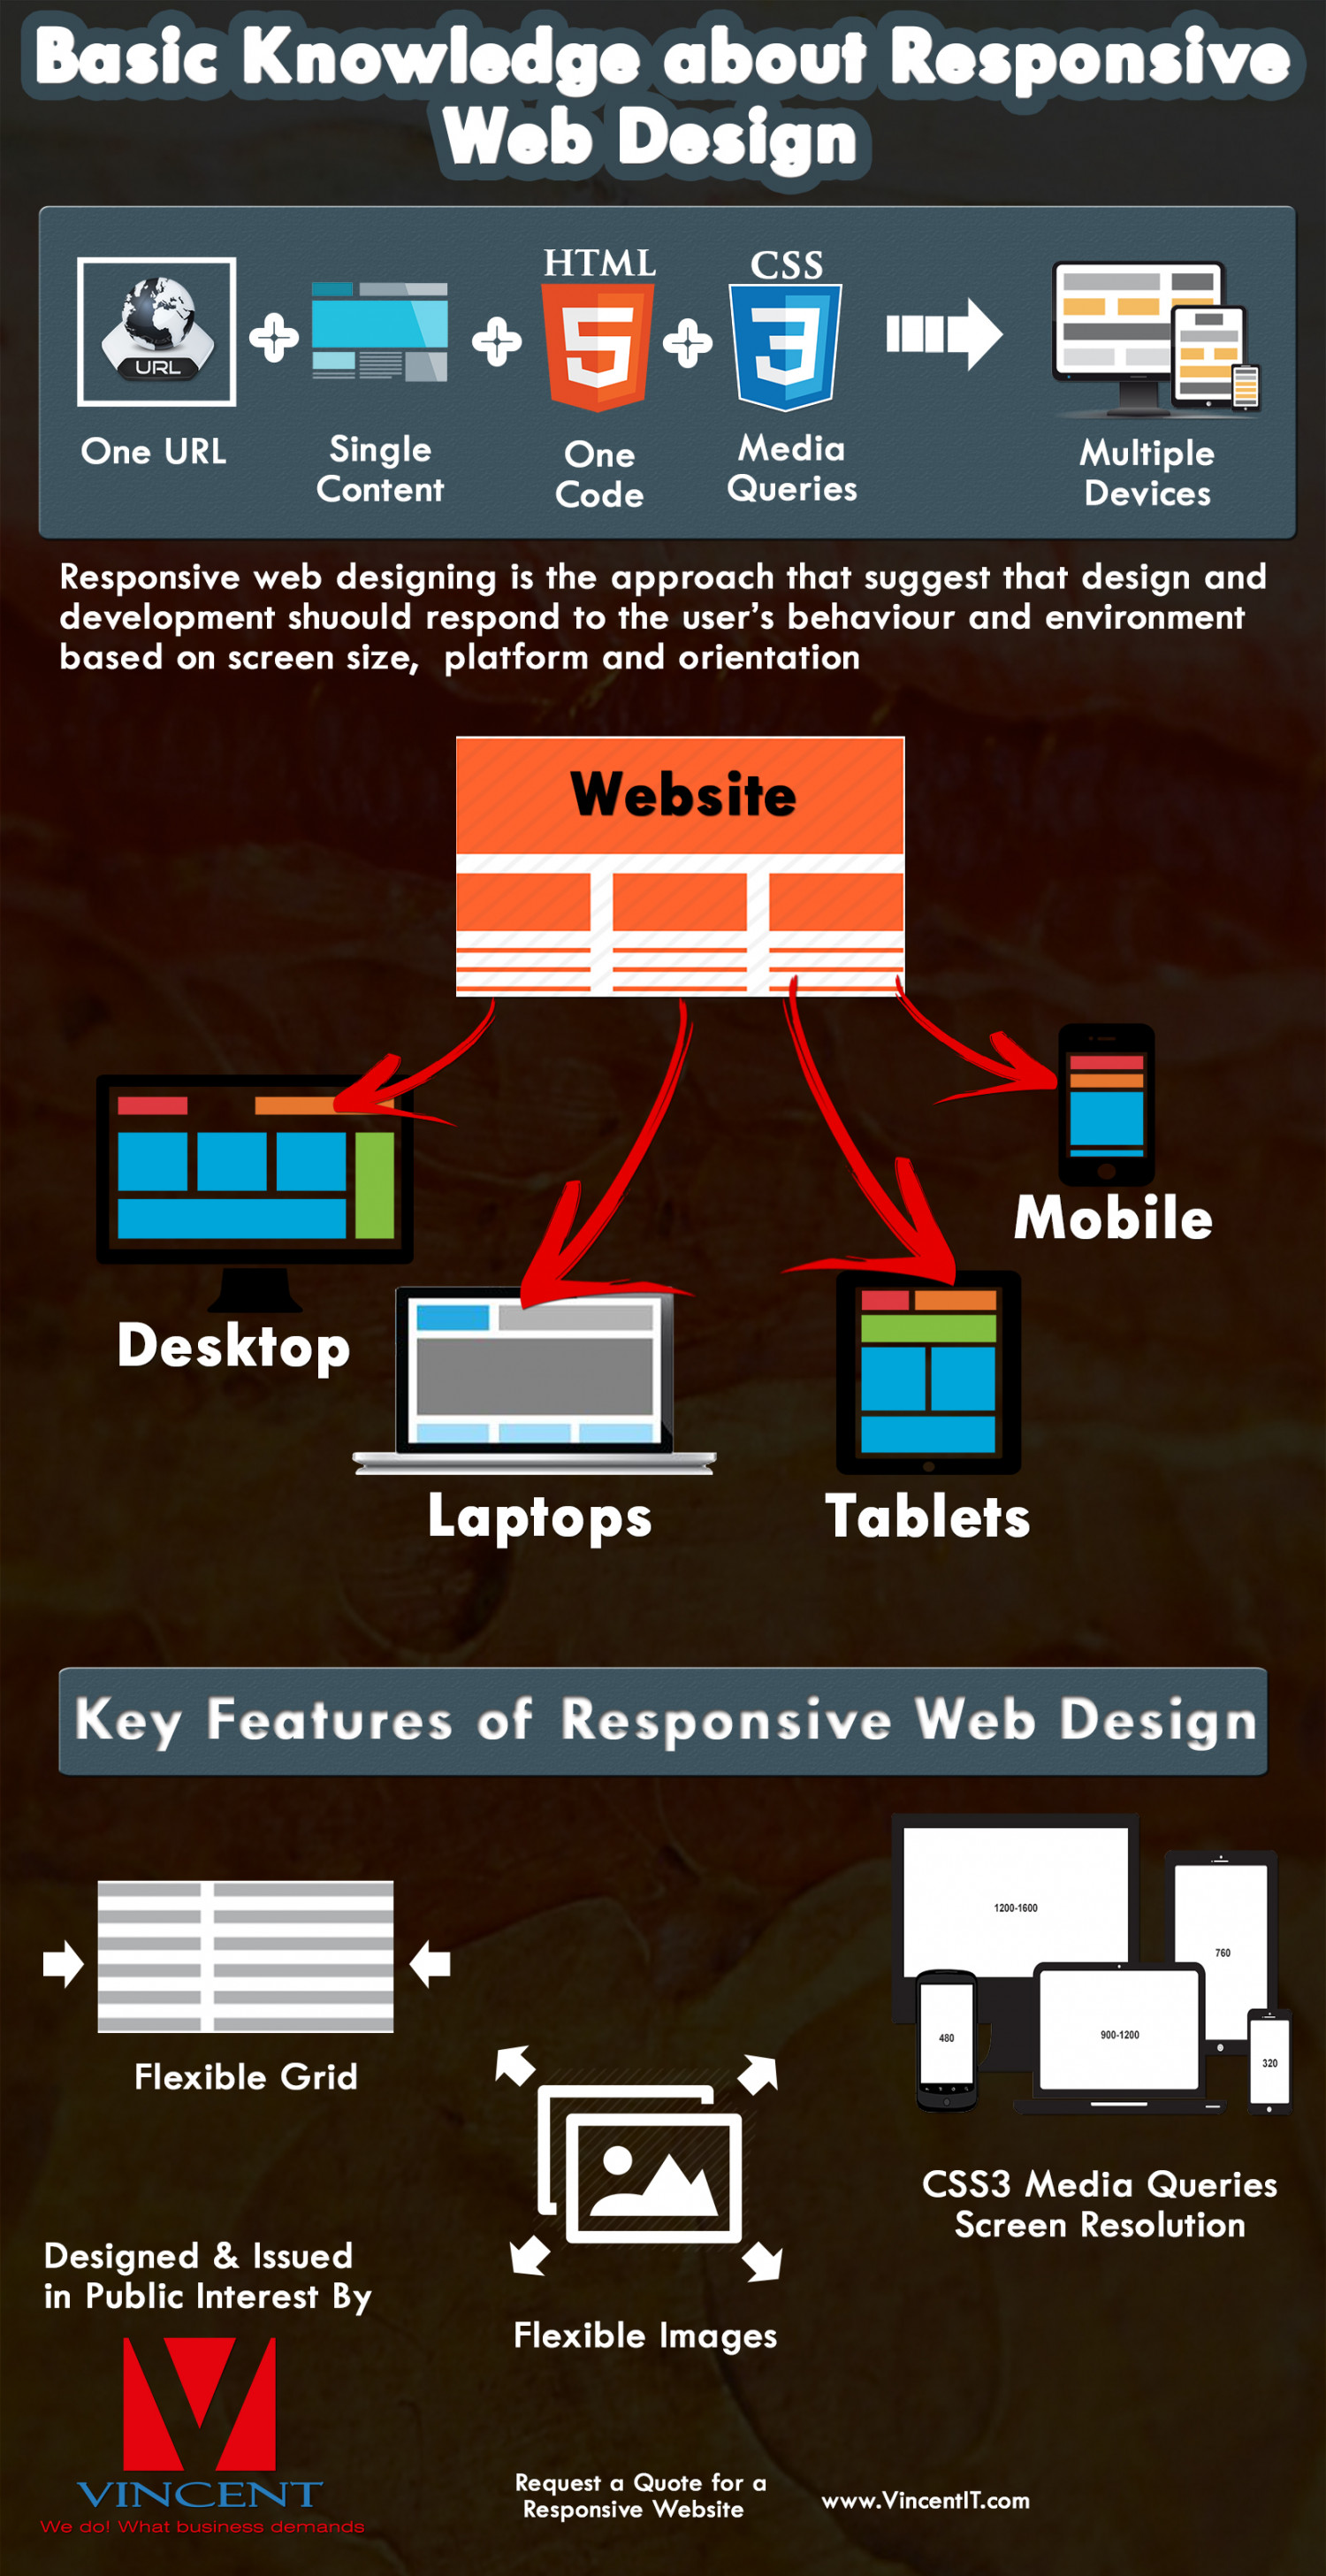 Vincent It Inc Basic Knowledge About Responsive Web Design Visual Ly